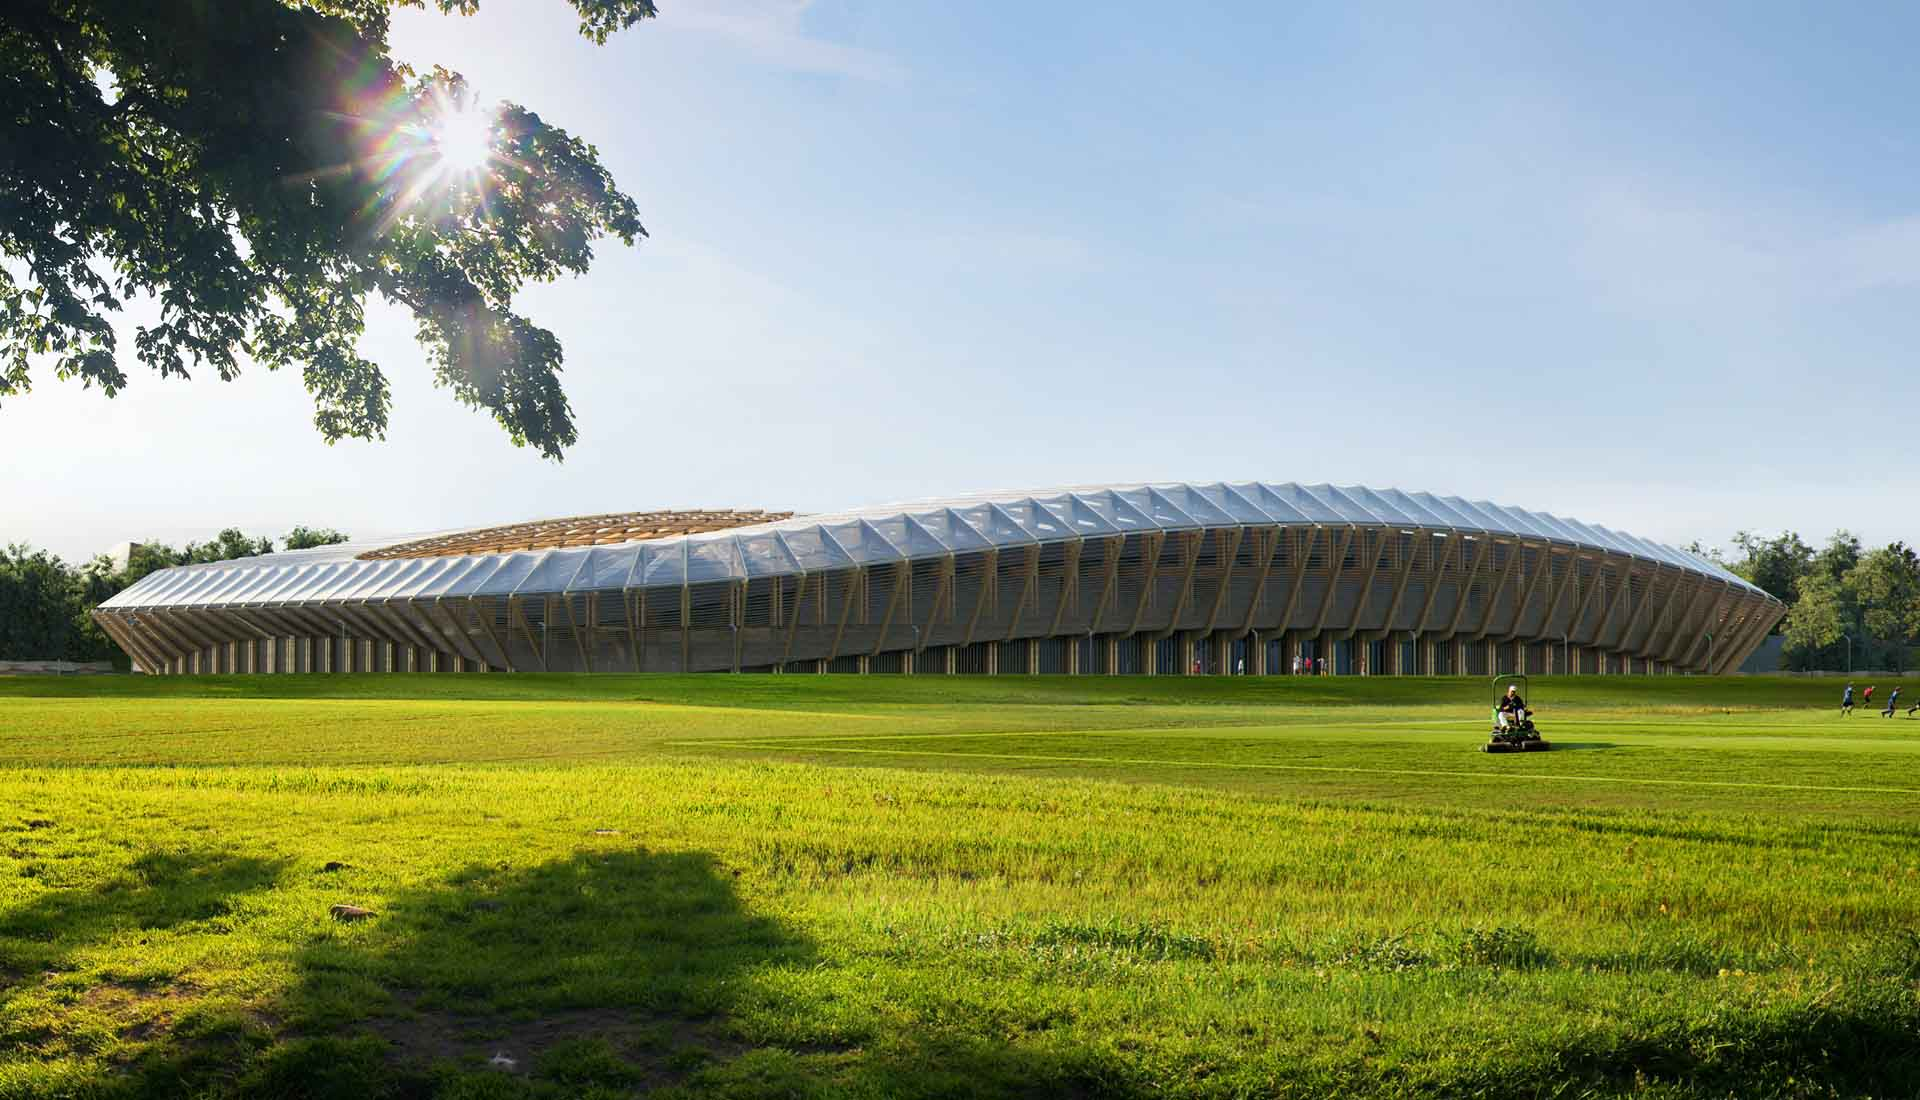 The new stadium for the Forest Green Rovers